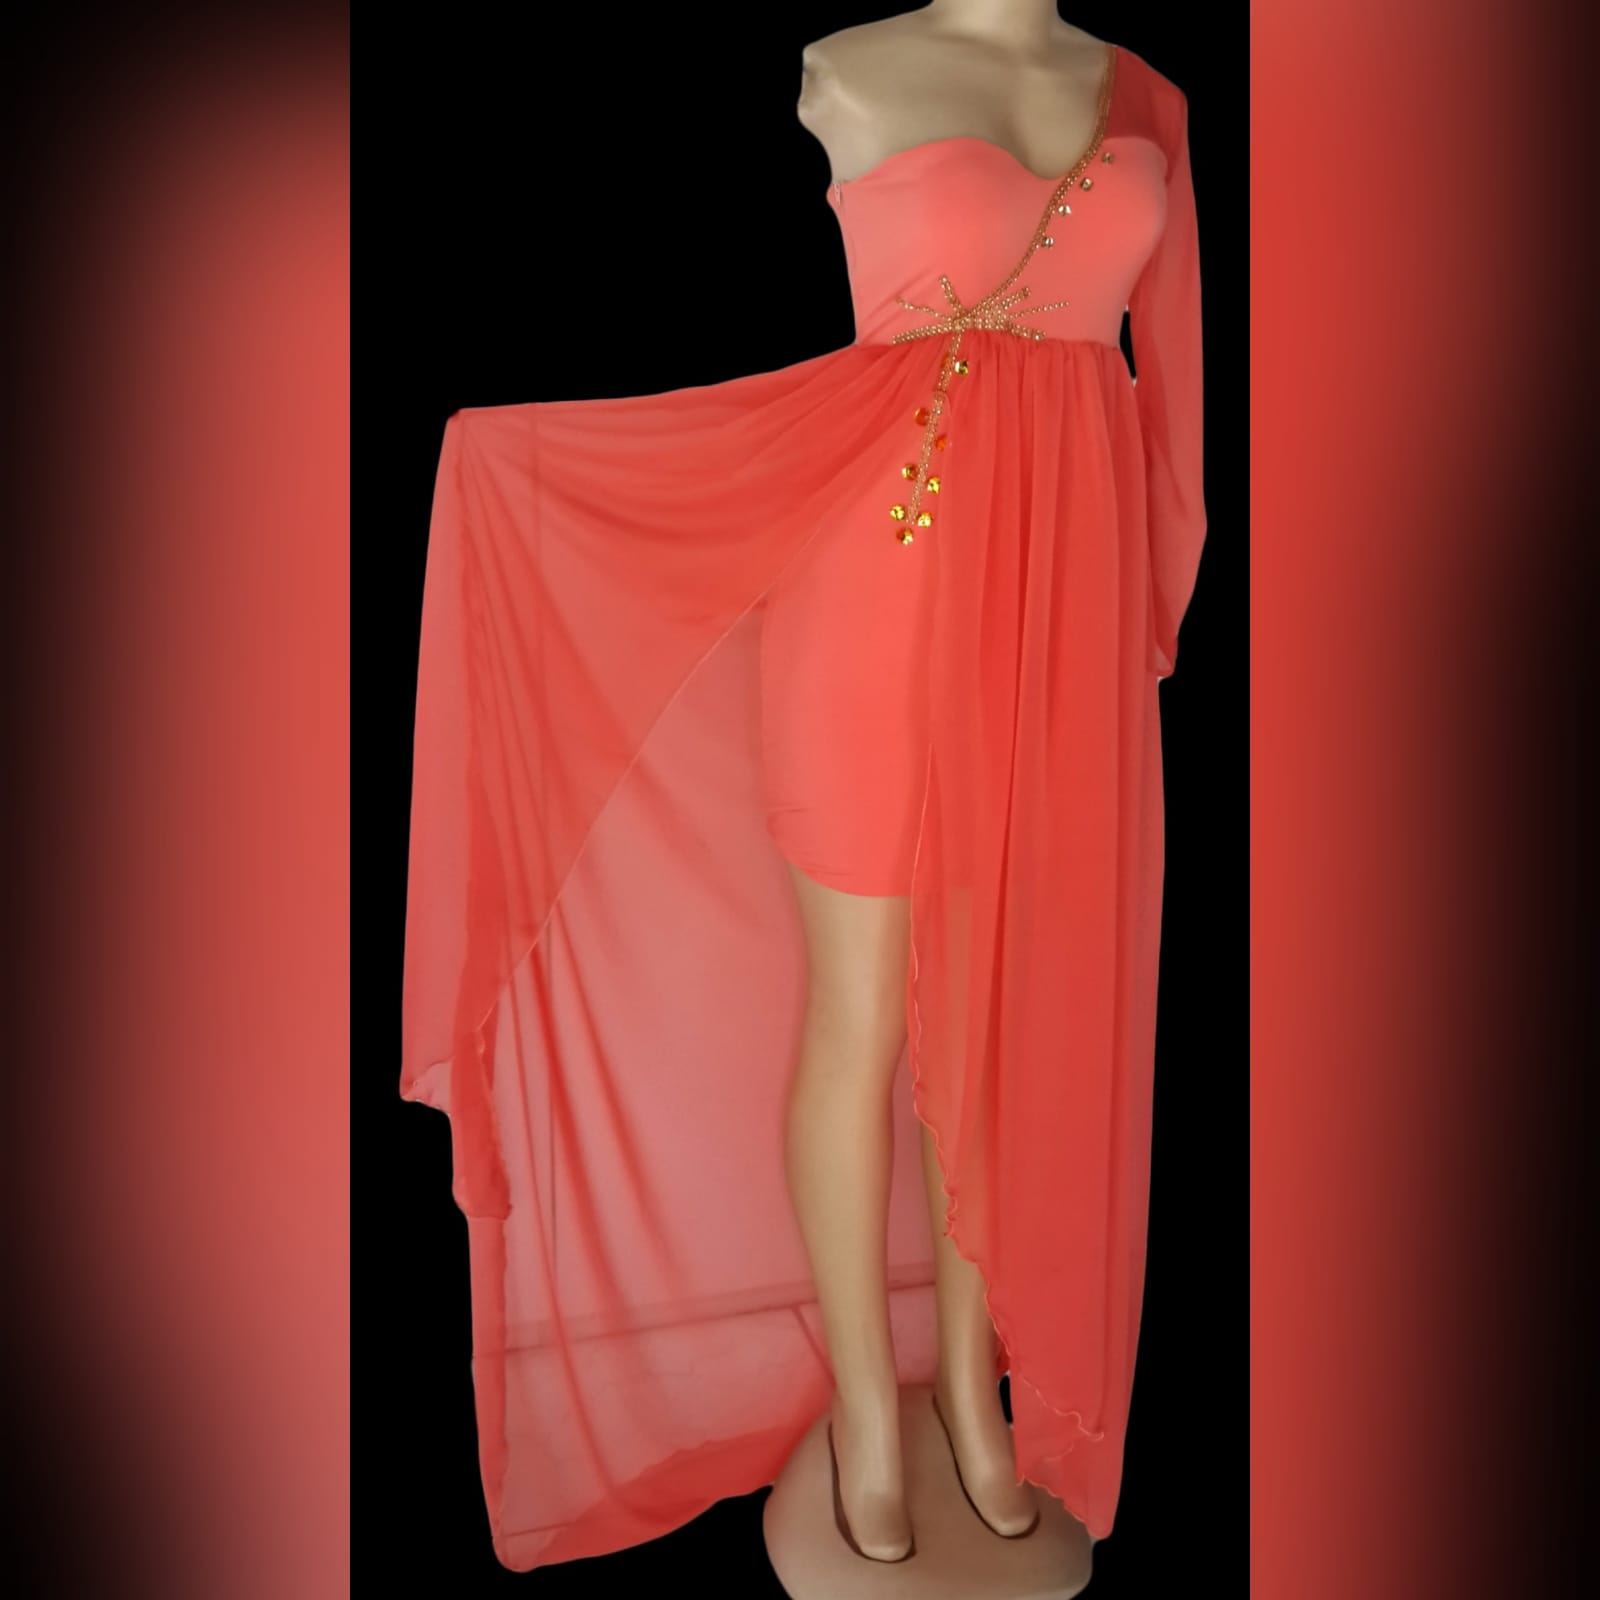 Bright coral flowy engagement dress 1 bright coral flowy engagement dress. Mini dress with a one shoulder and sleeve in chiffon, with an added gathered chiffon skirt part with a slit, dress detailed with gold bead work